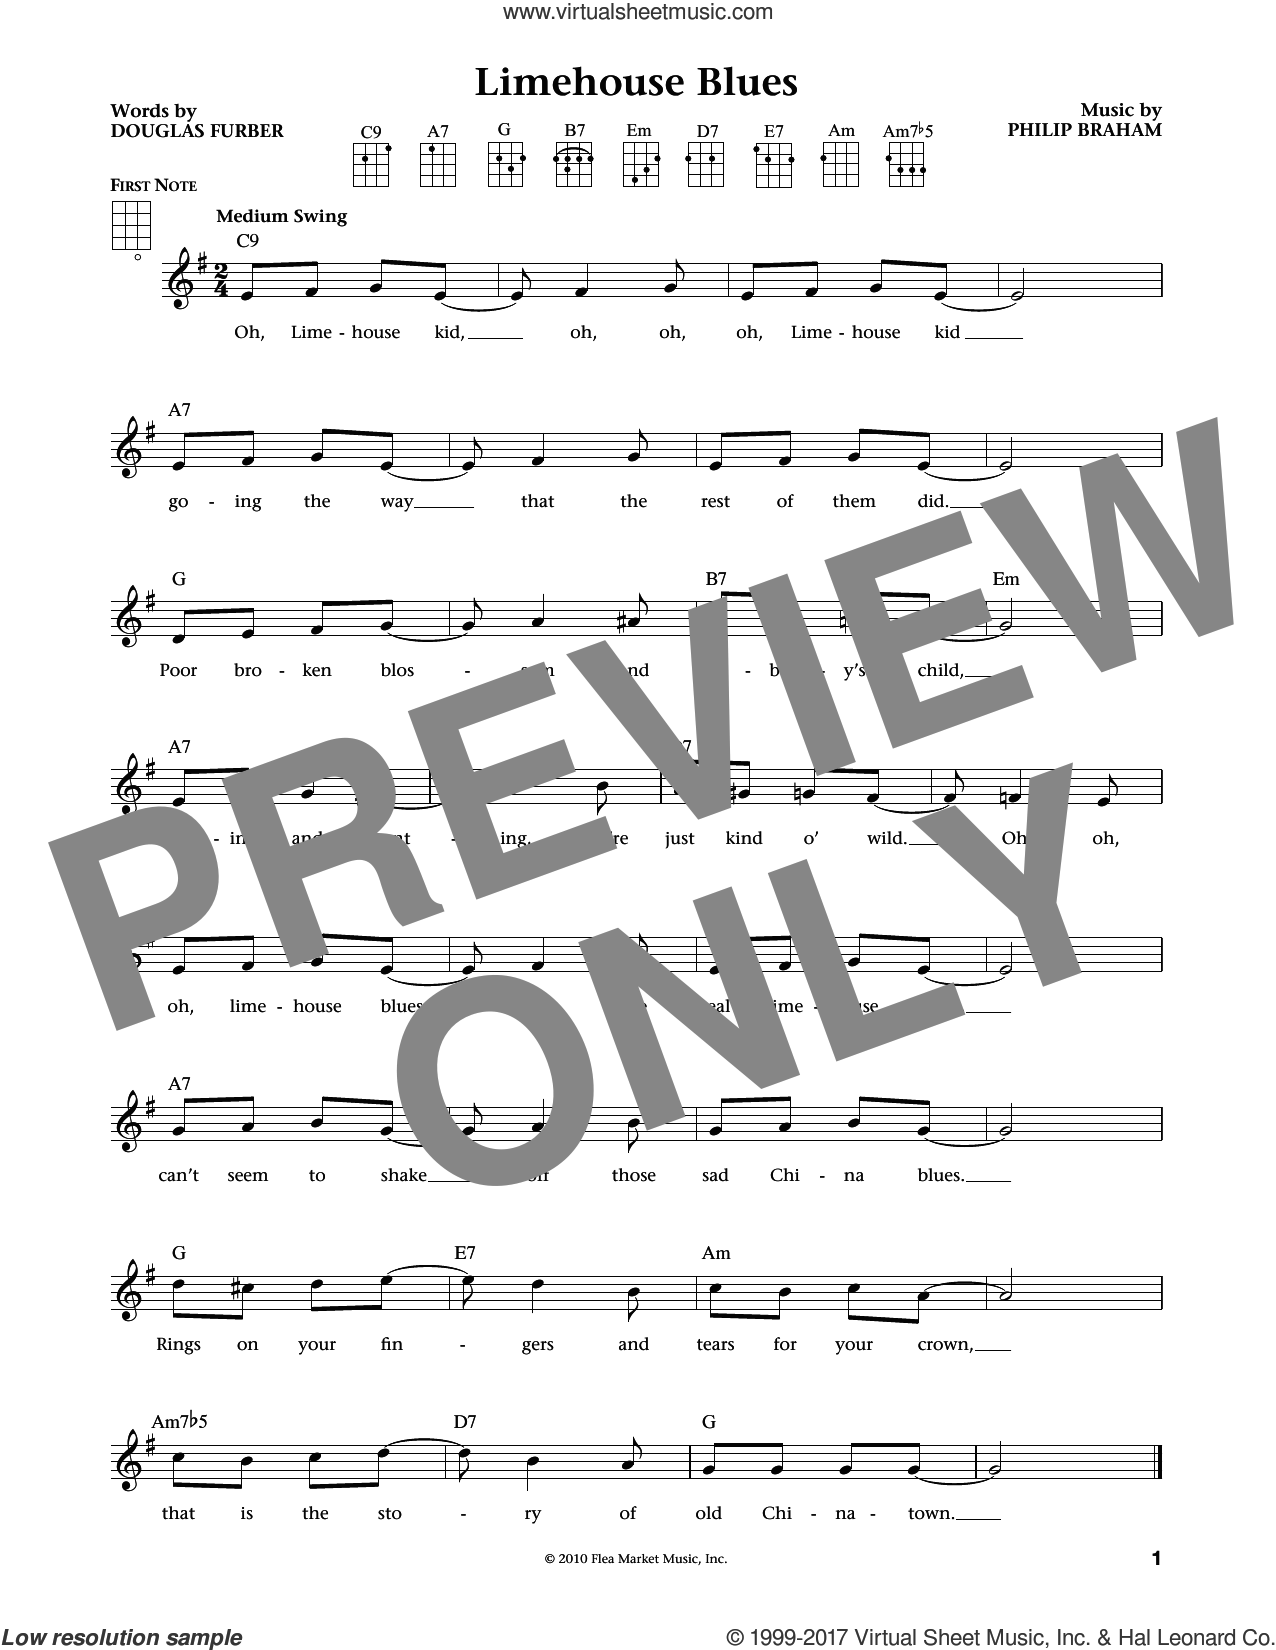 Limehouse Blues (from The Daily Ukulele) (arr. Liz and Jim Beloff) sheet music for ukulele by Douglas Furber, Jim Beloff, Liz Beloff and Philip Braham, intermediate skill level